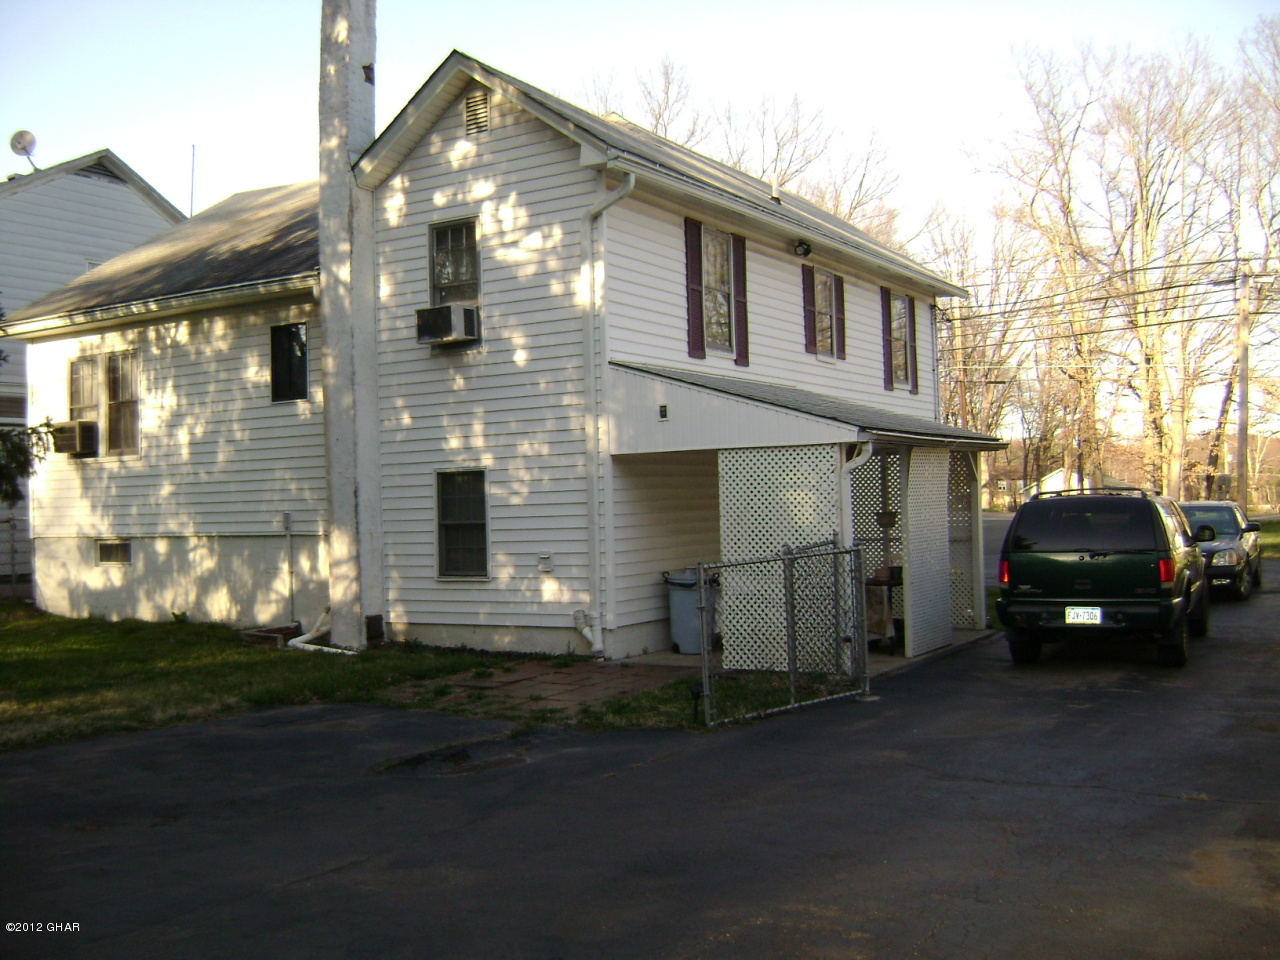 442 N Hunter Hwy, Drums, PA 18222